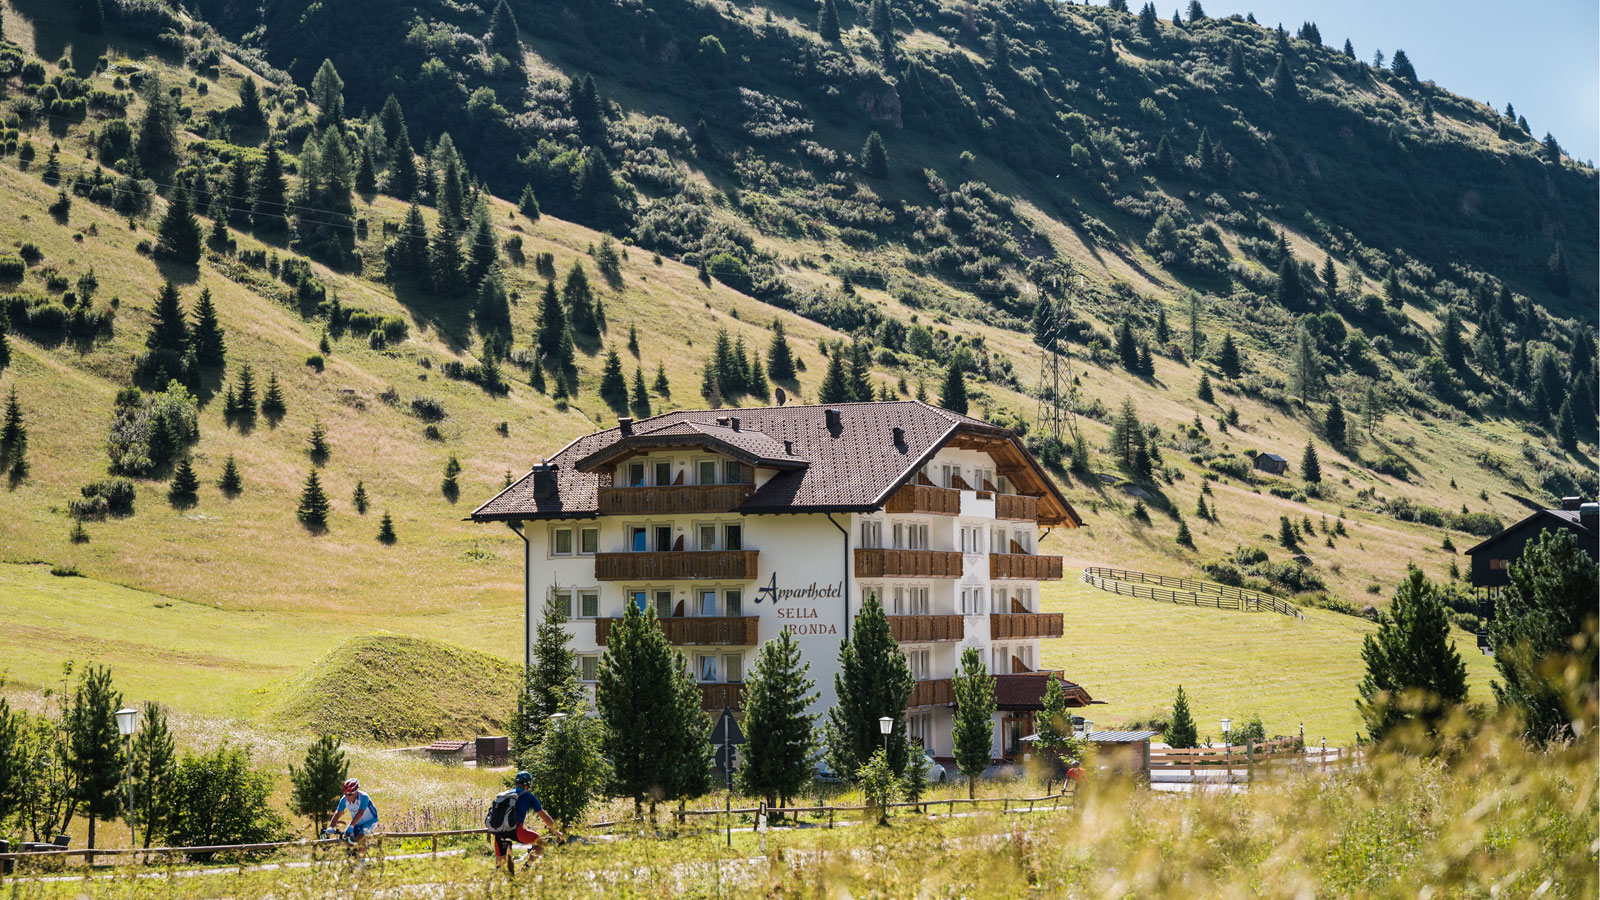 Apparthotel Sellaronda during summer season